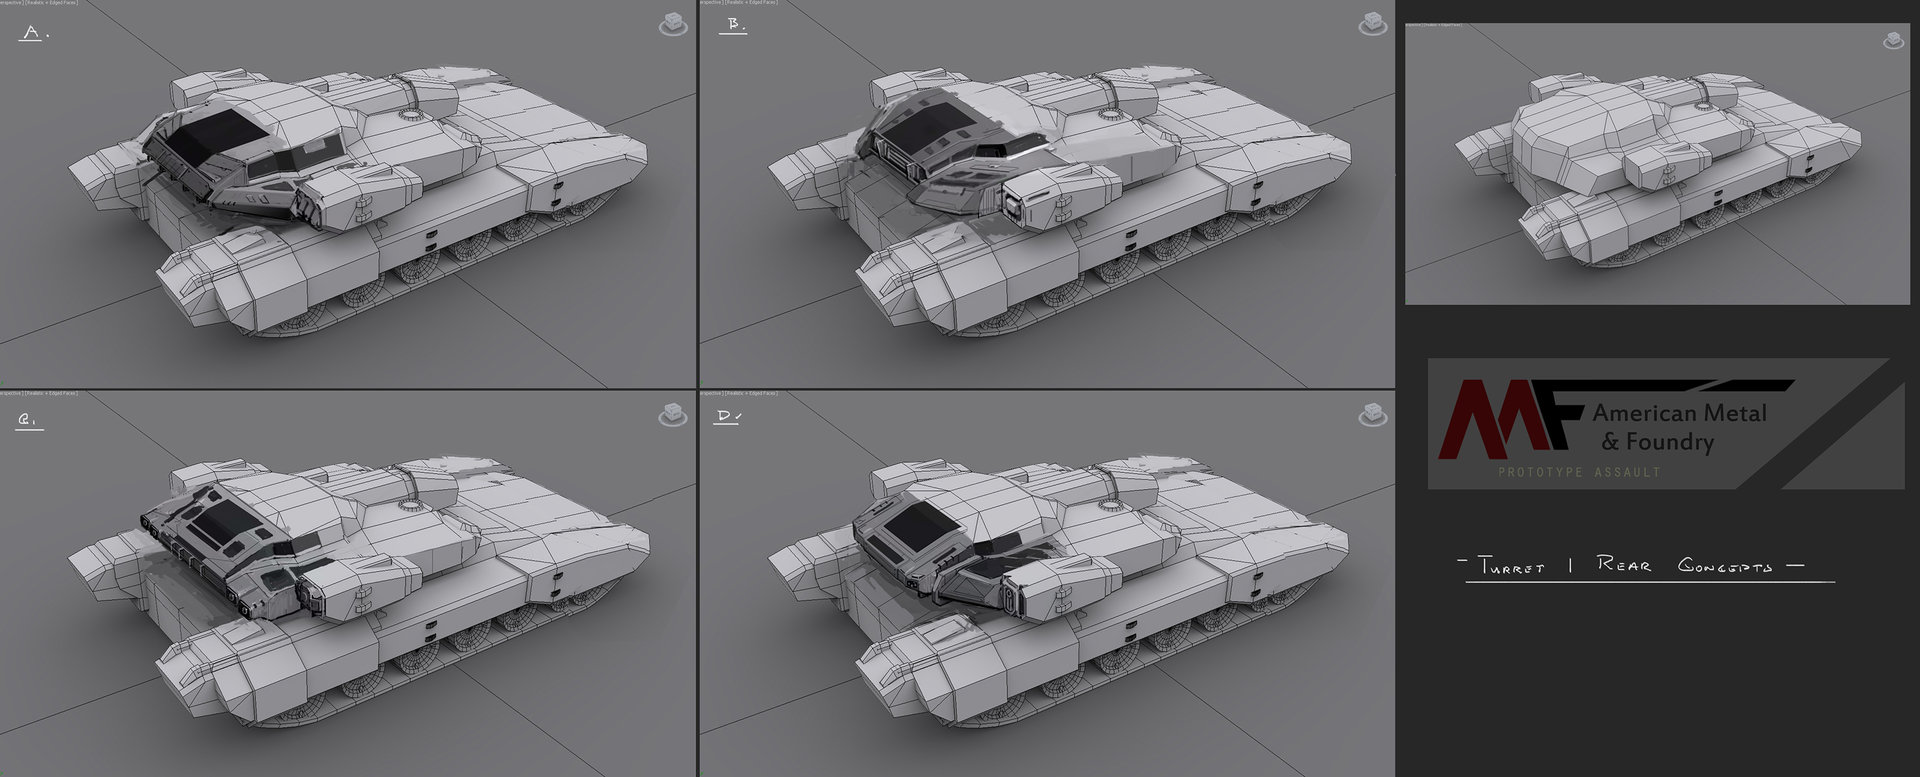 Muyoung kim armor turret 1 rear concept sketches